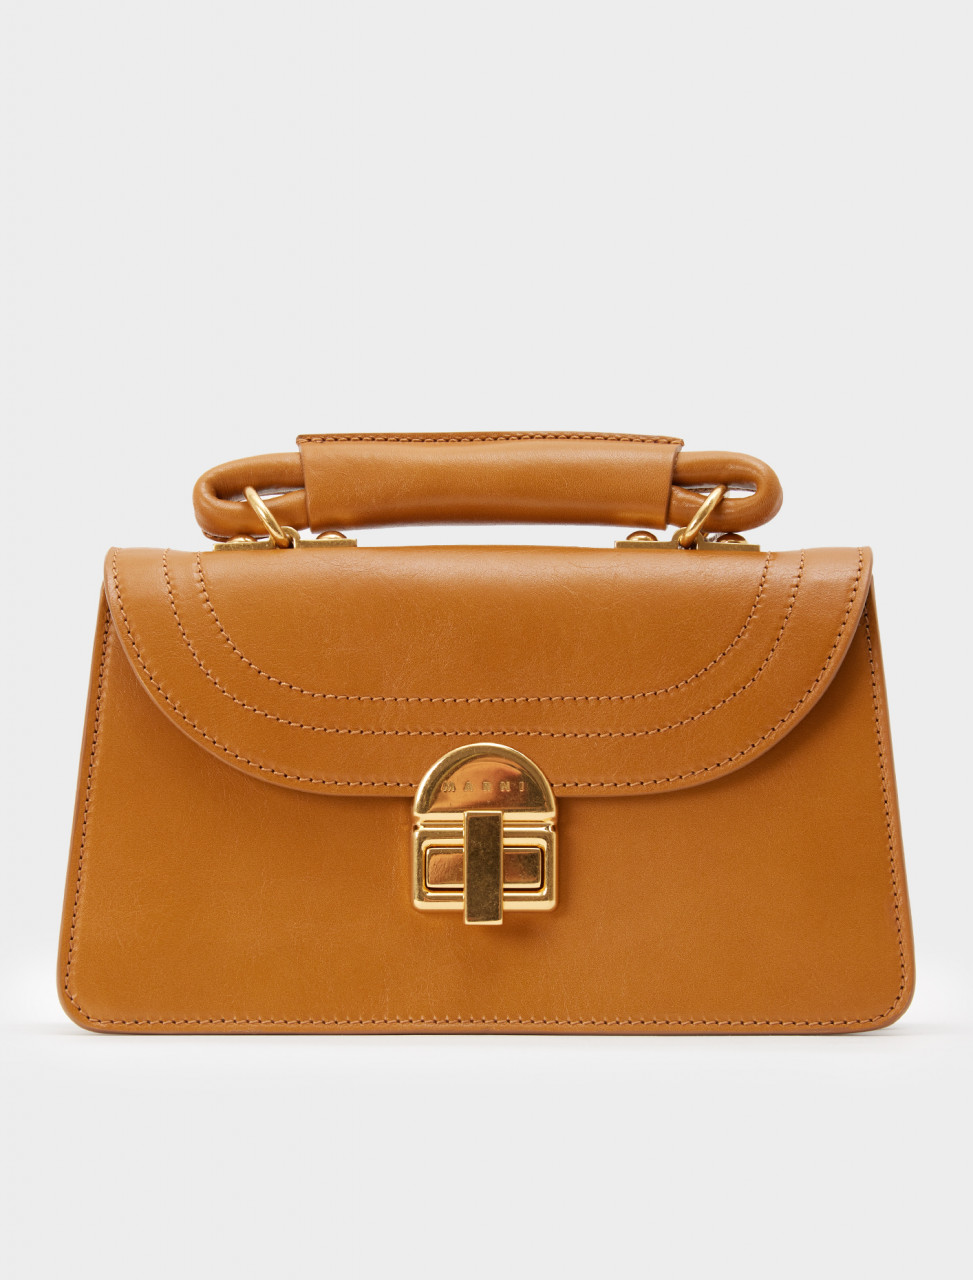 137-BMMP0043Y1-P3430-00W74 MARNI HAND BAG WINTER WHEAT